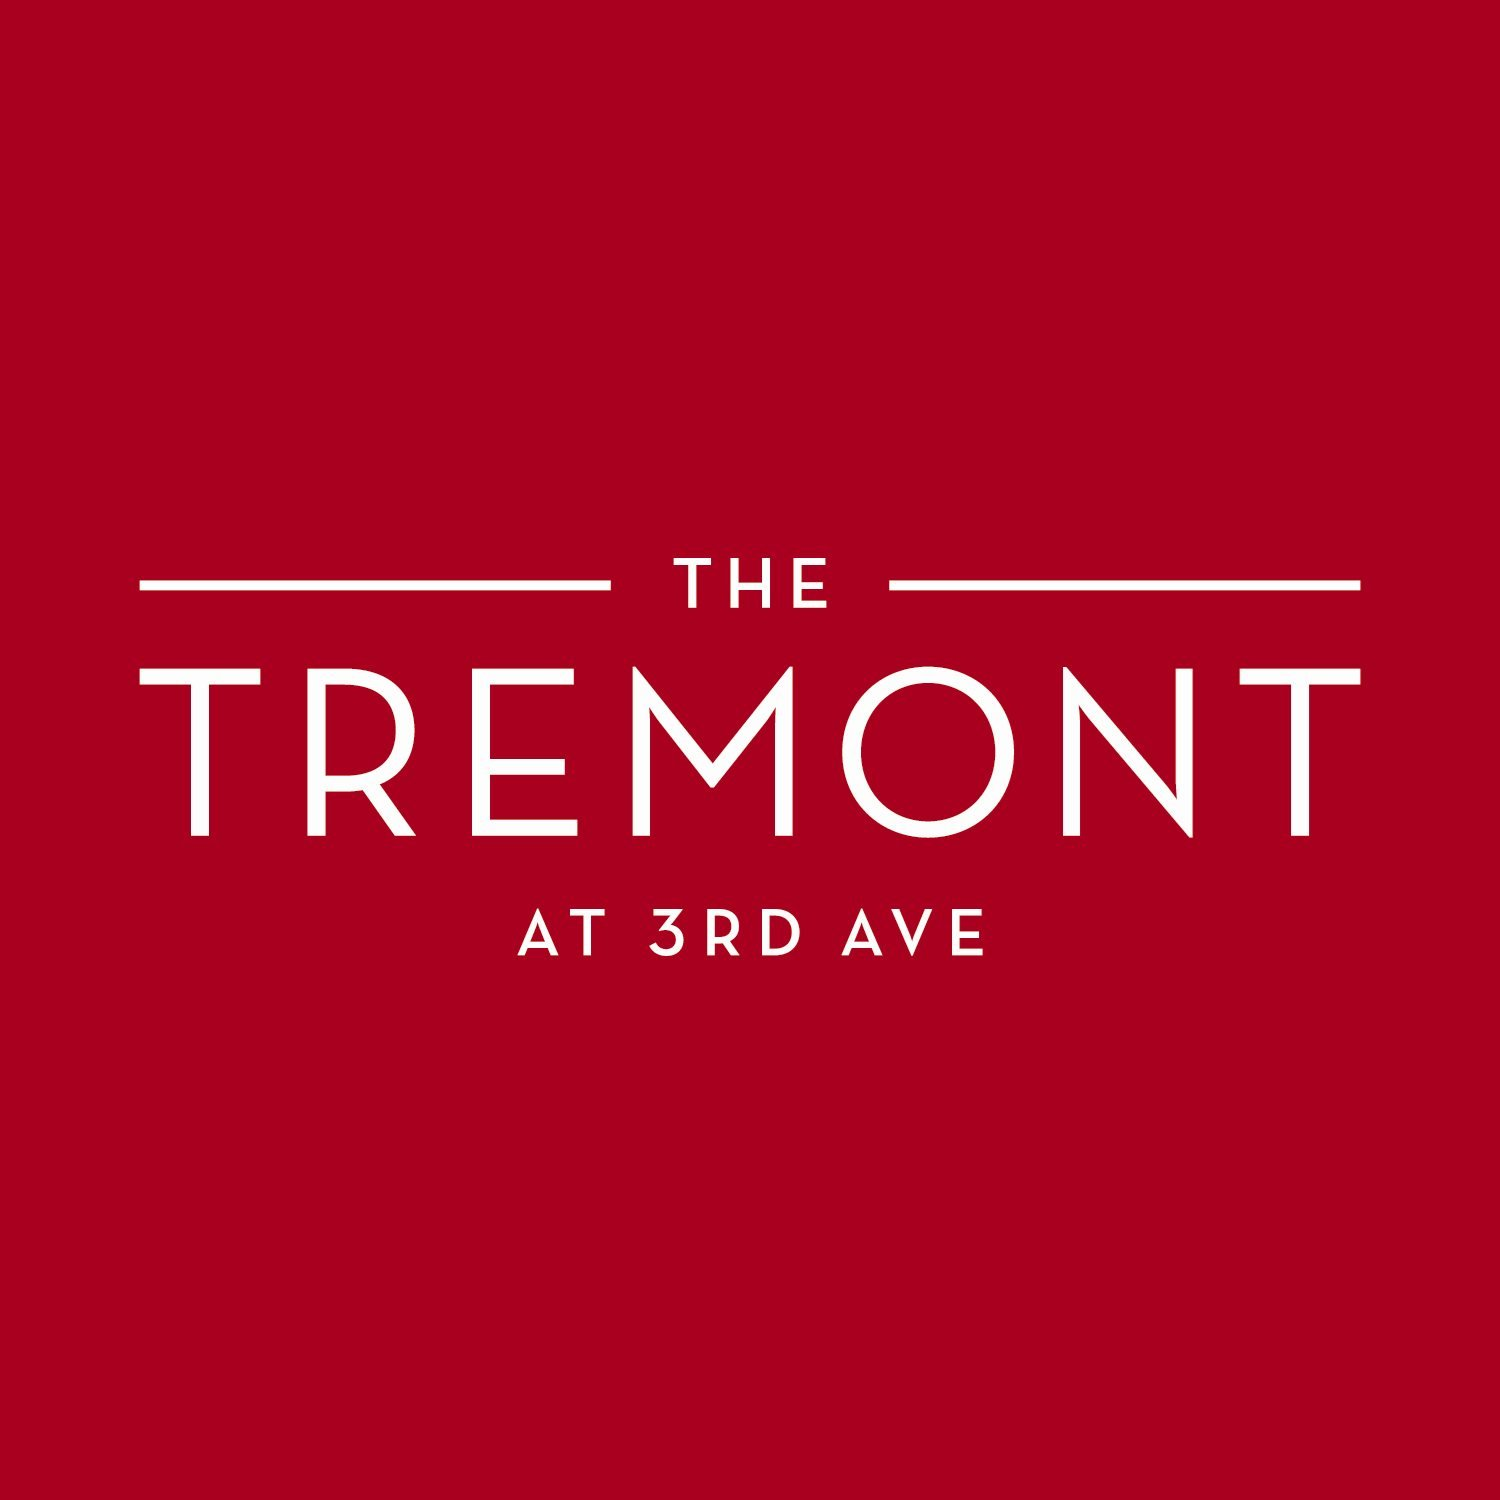 The Tremont Burlington